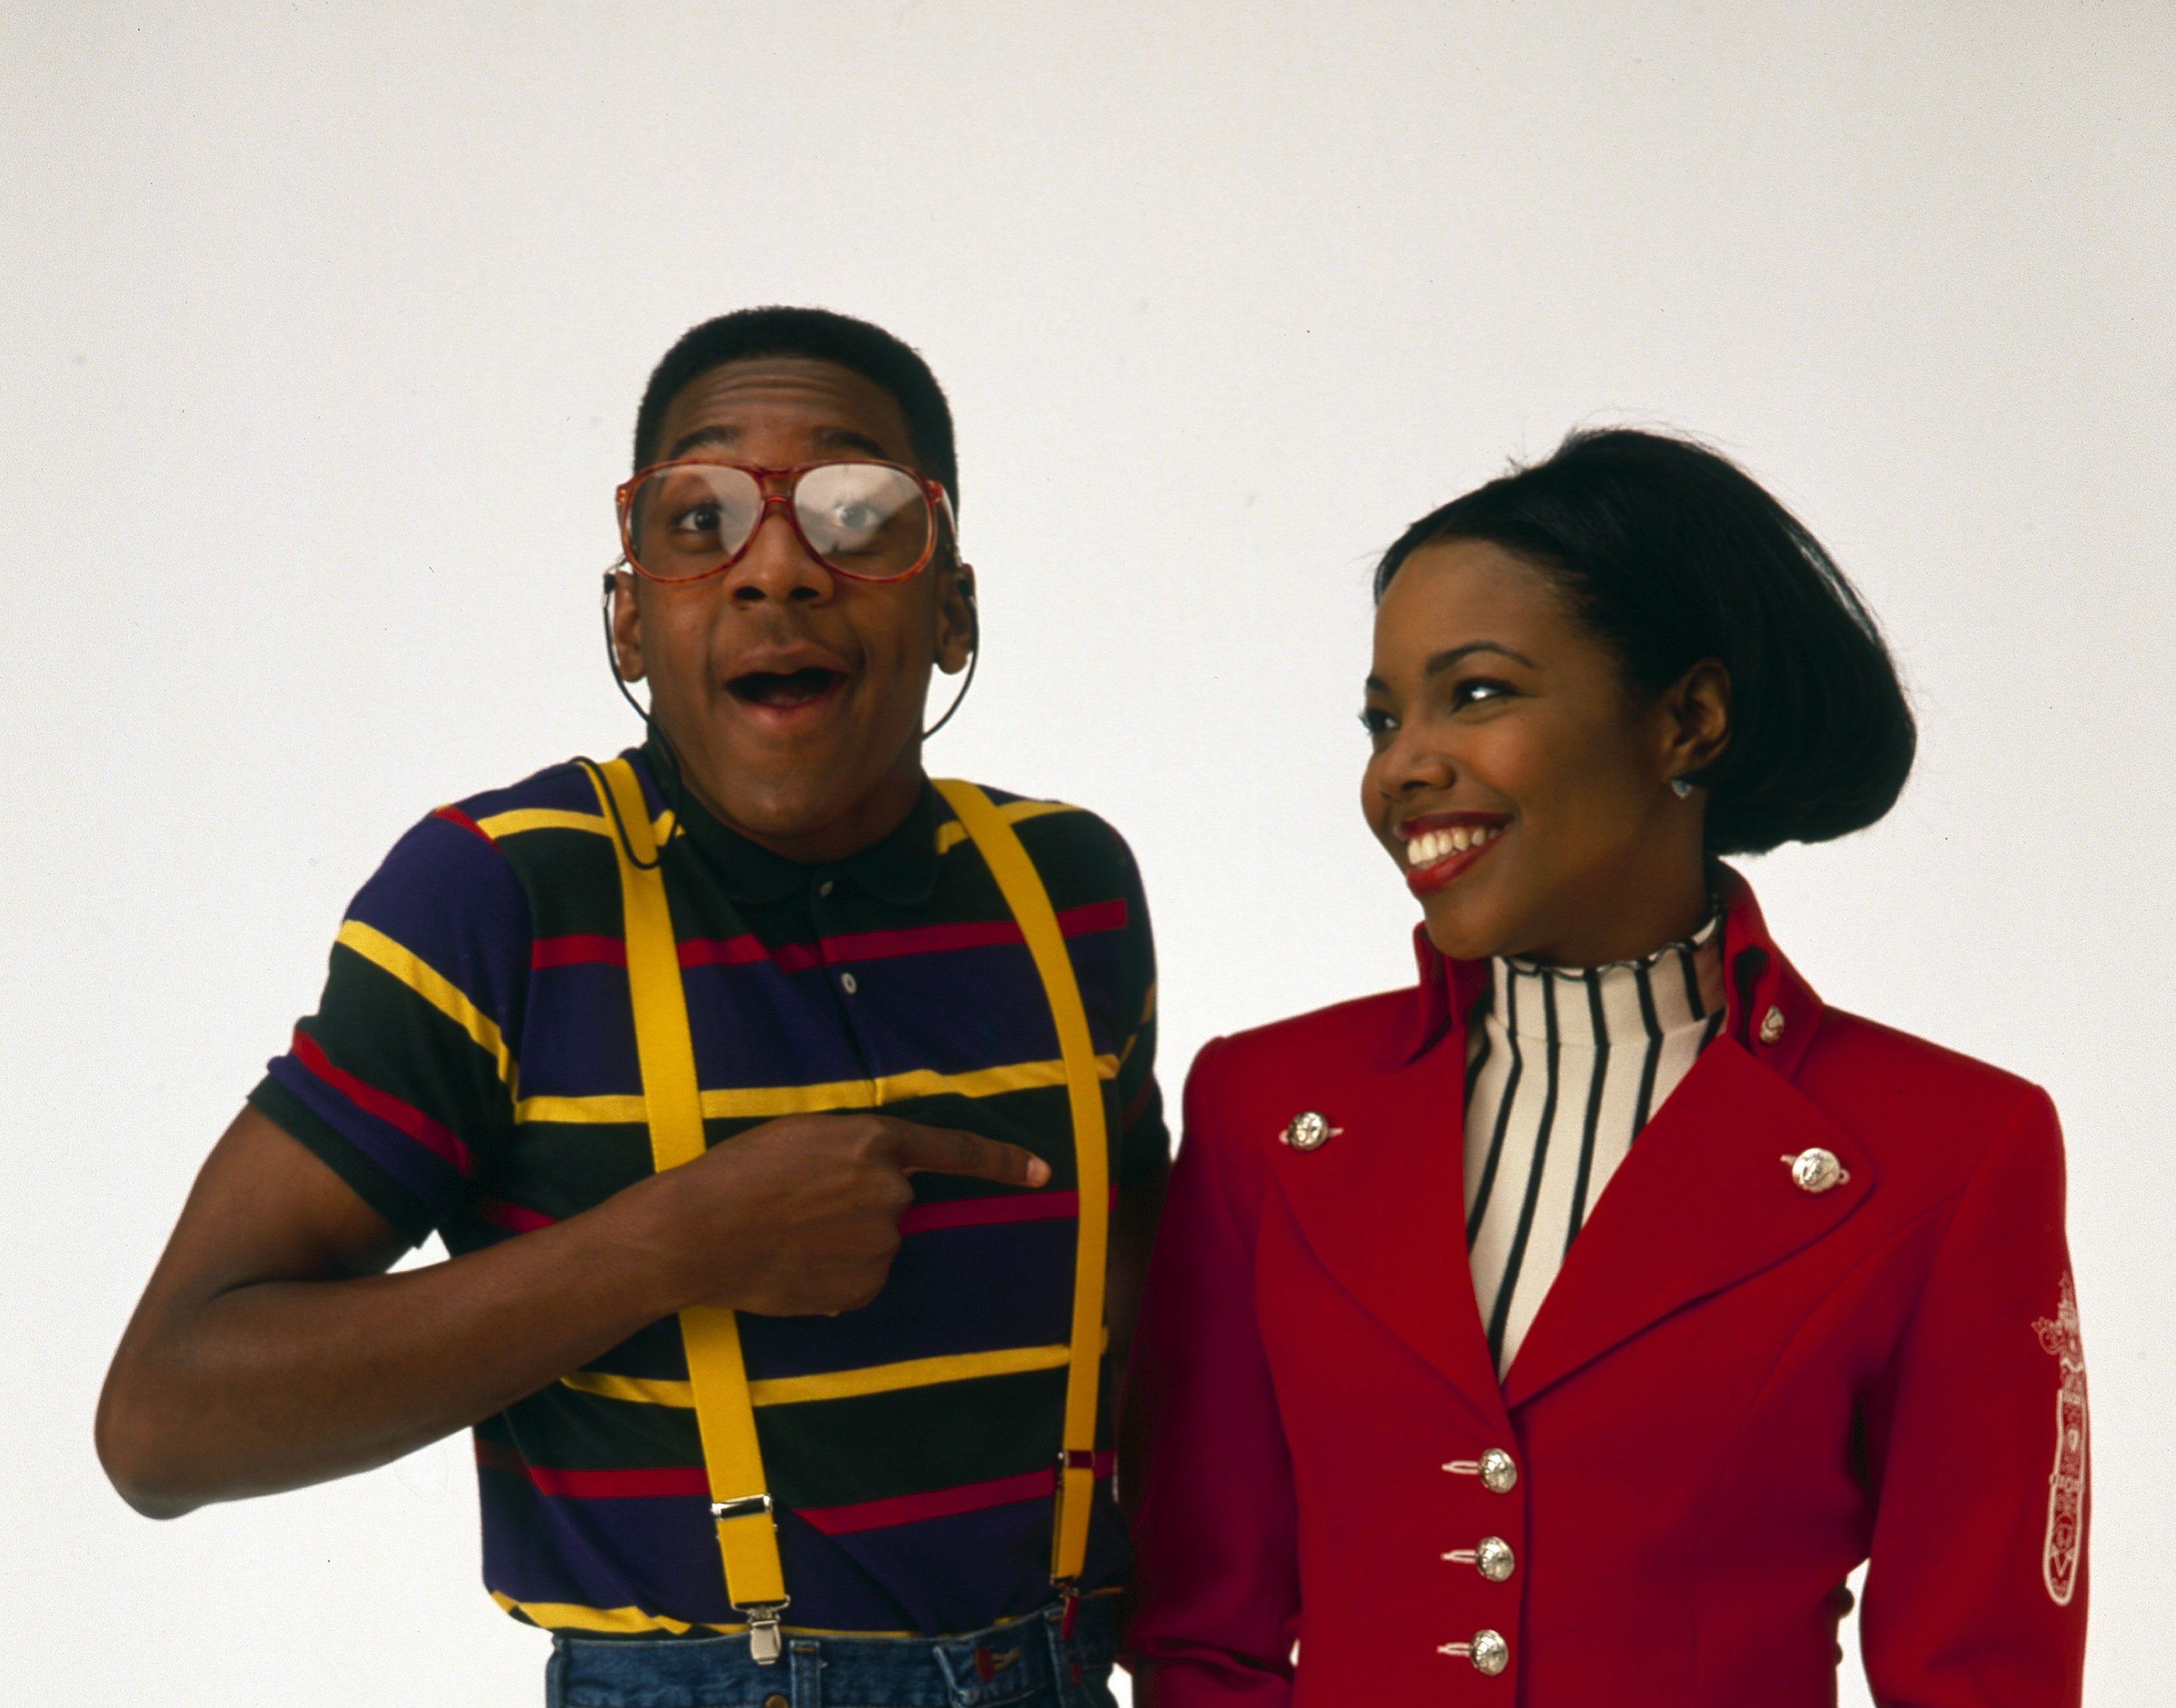 Photo of Urkel in a striped polo and yellow suspenders pointing to Laura wearing a red blazer